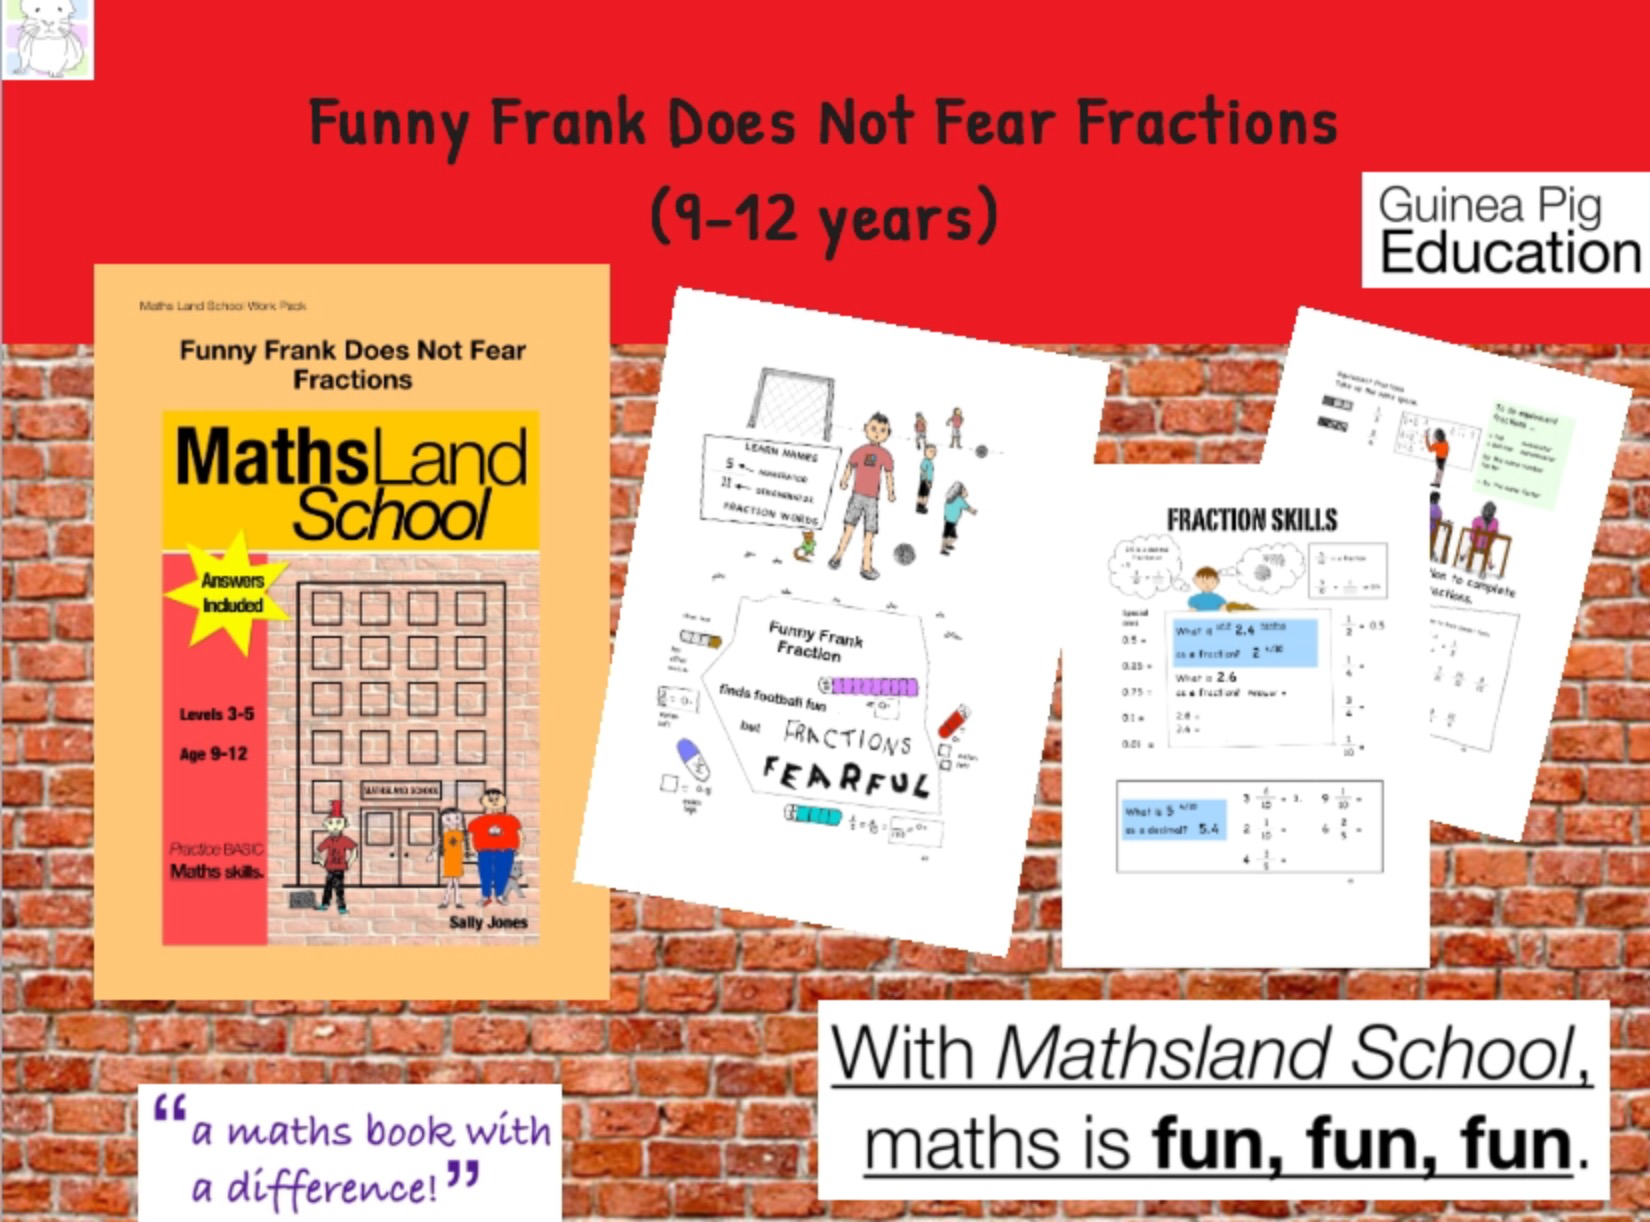 Funny Frank Does Not Fear Fractions (9-12 years)